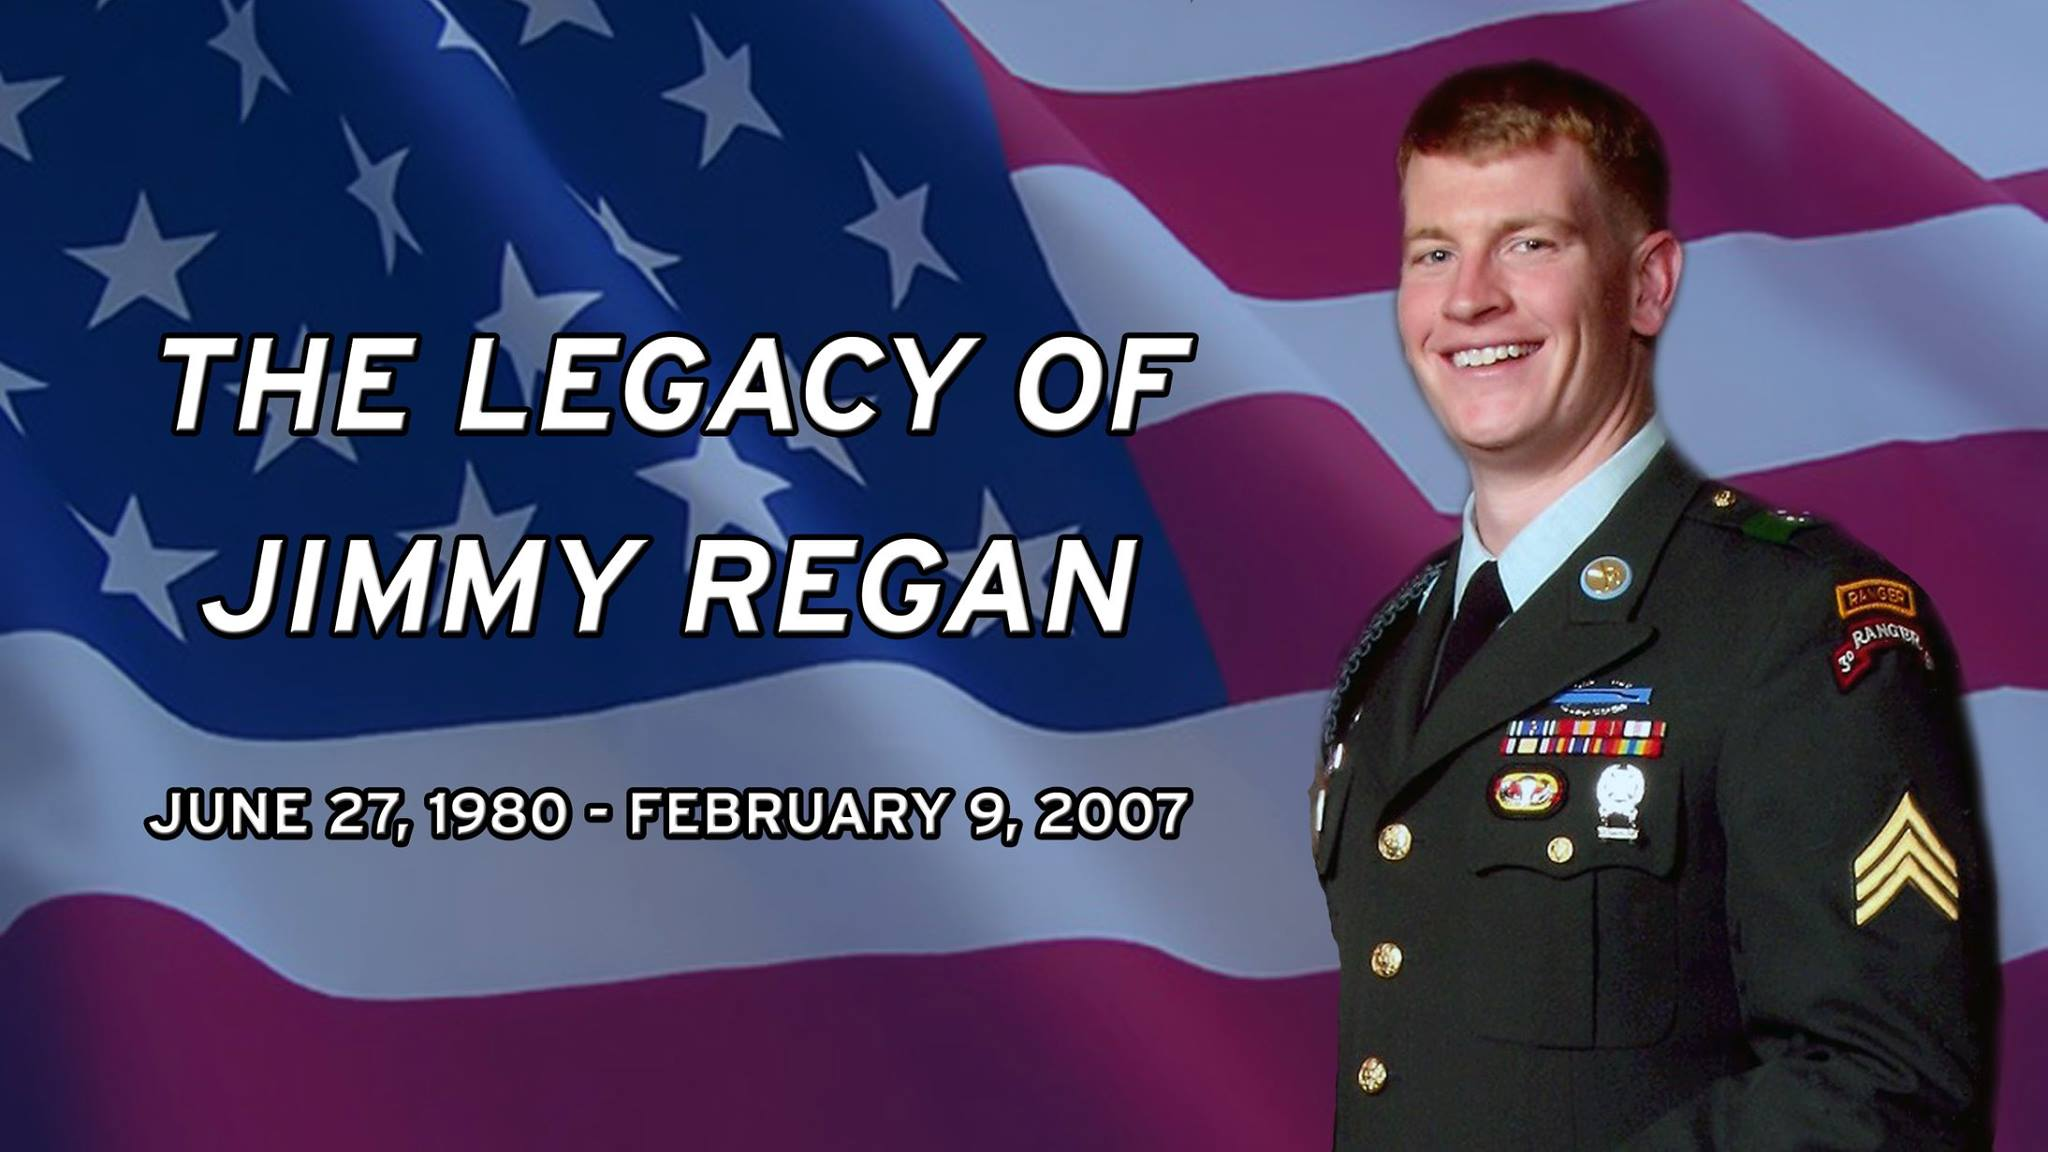 The Legacy of Jimmy Regan